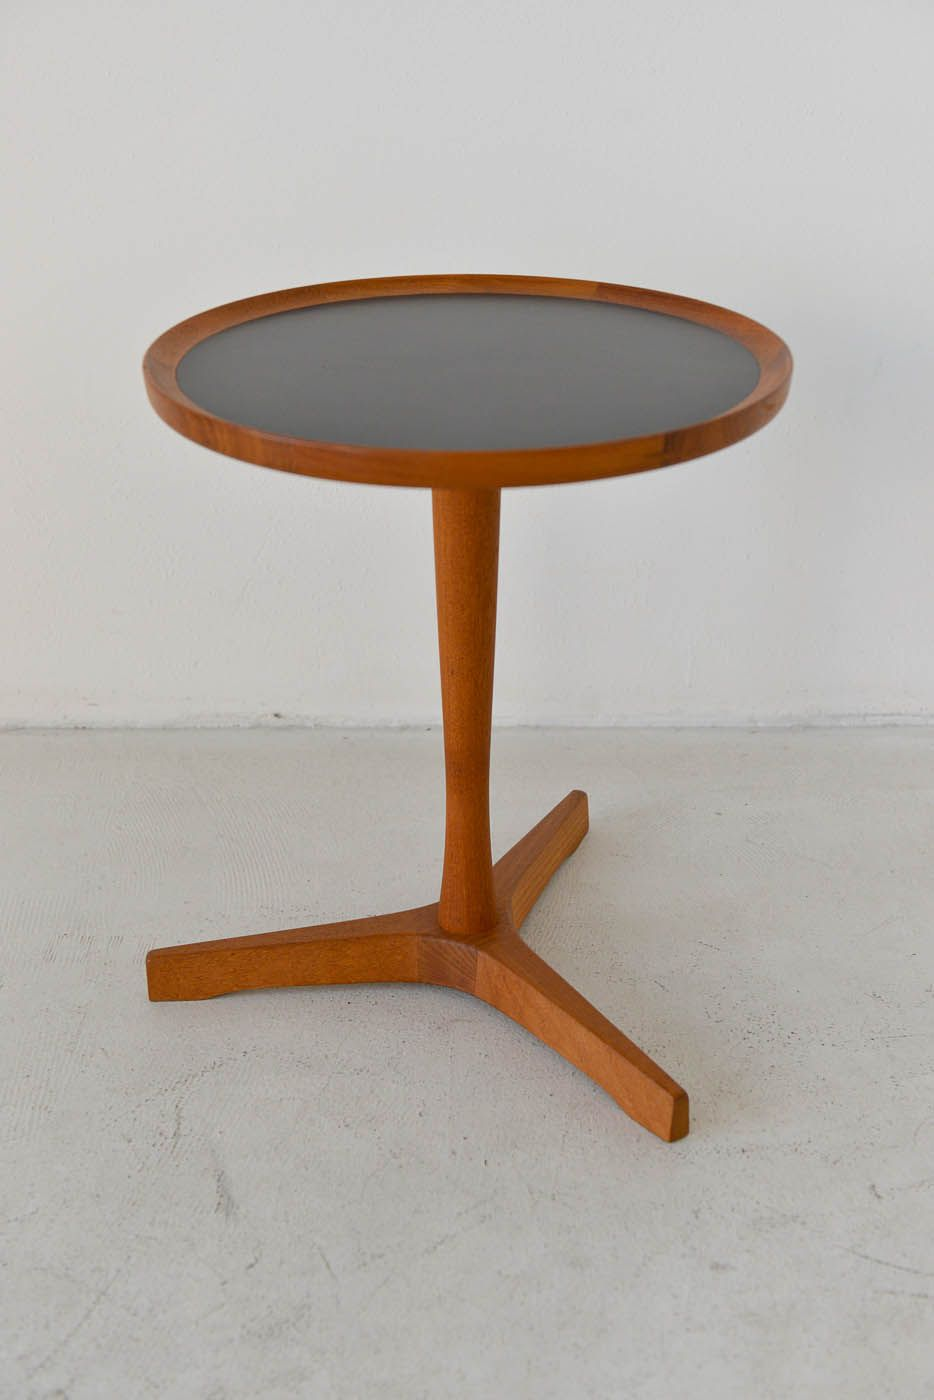 Danish modern teak tripod side table designed by hans c andersen danish modern teak tripod side table designed by hans c andersen measures 145 diameter geotapseo Image collections